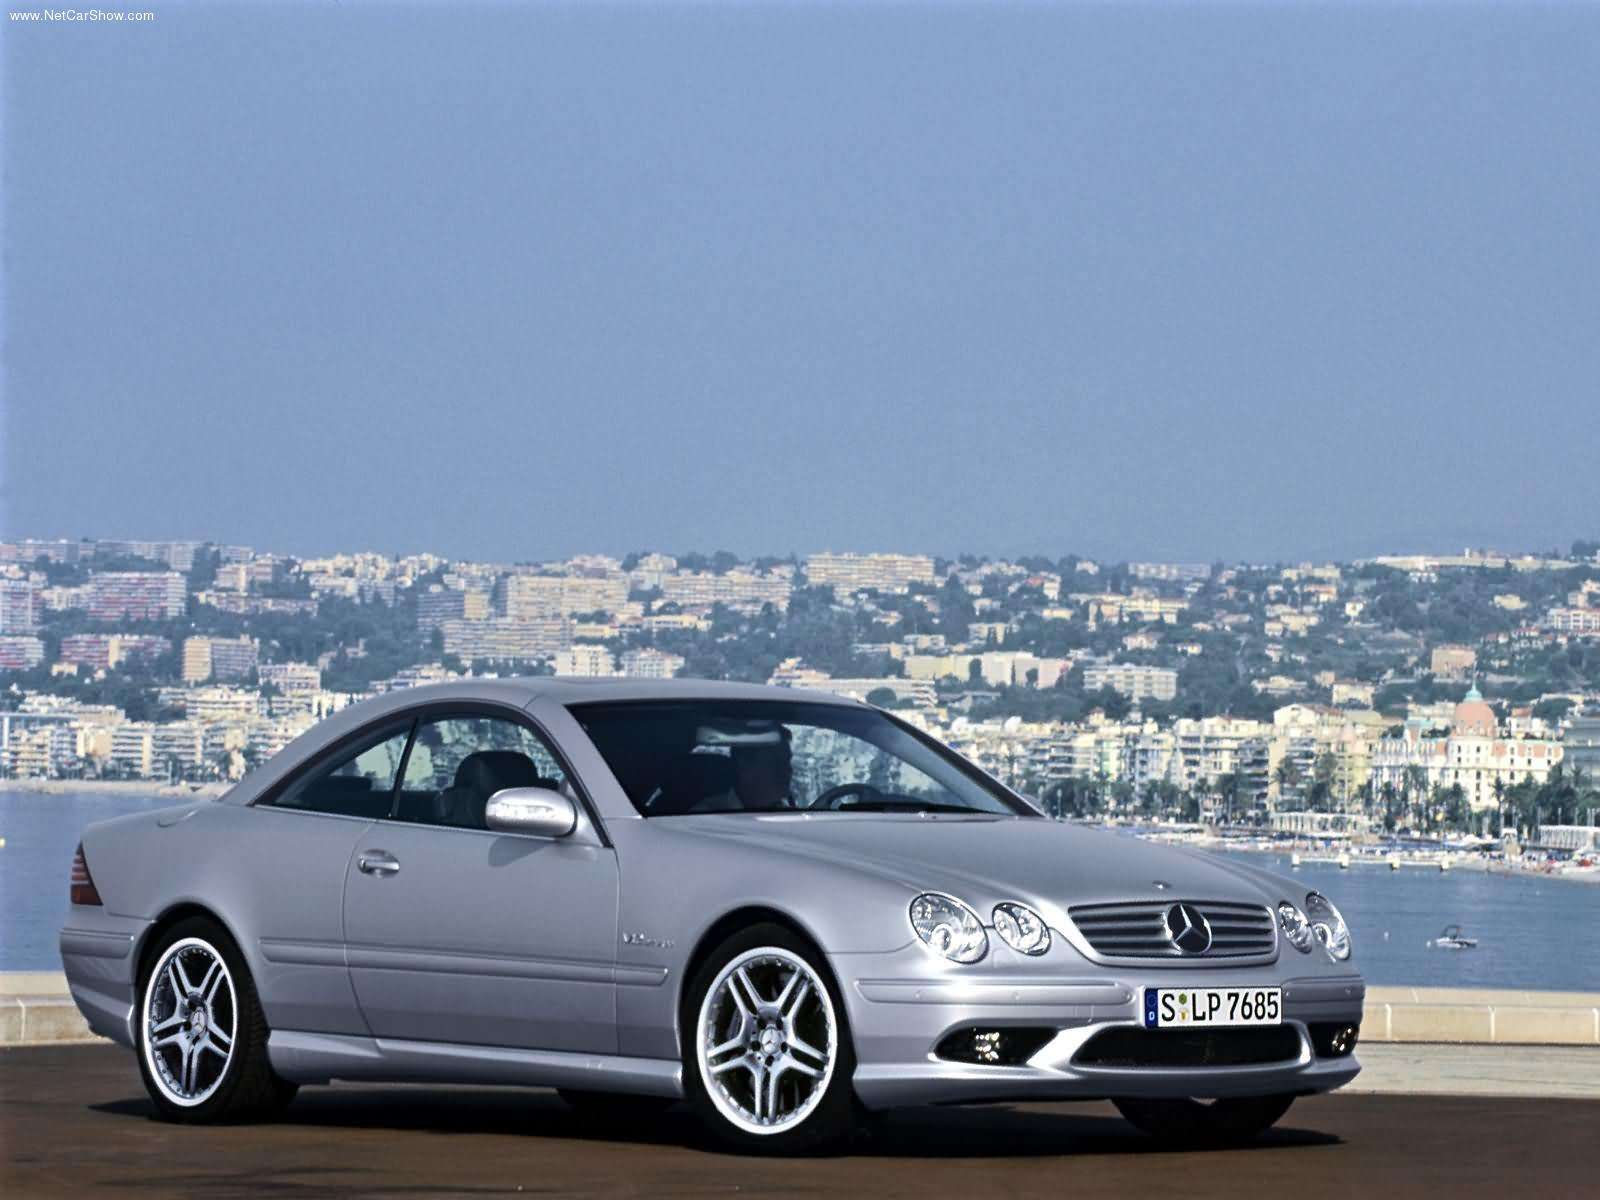 2005 Mercedes-Benz CL65 AMG 2 Dr Turbo Coupe picture